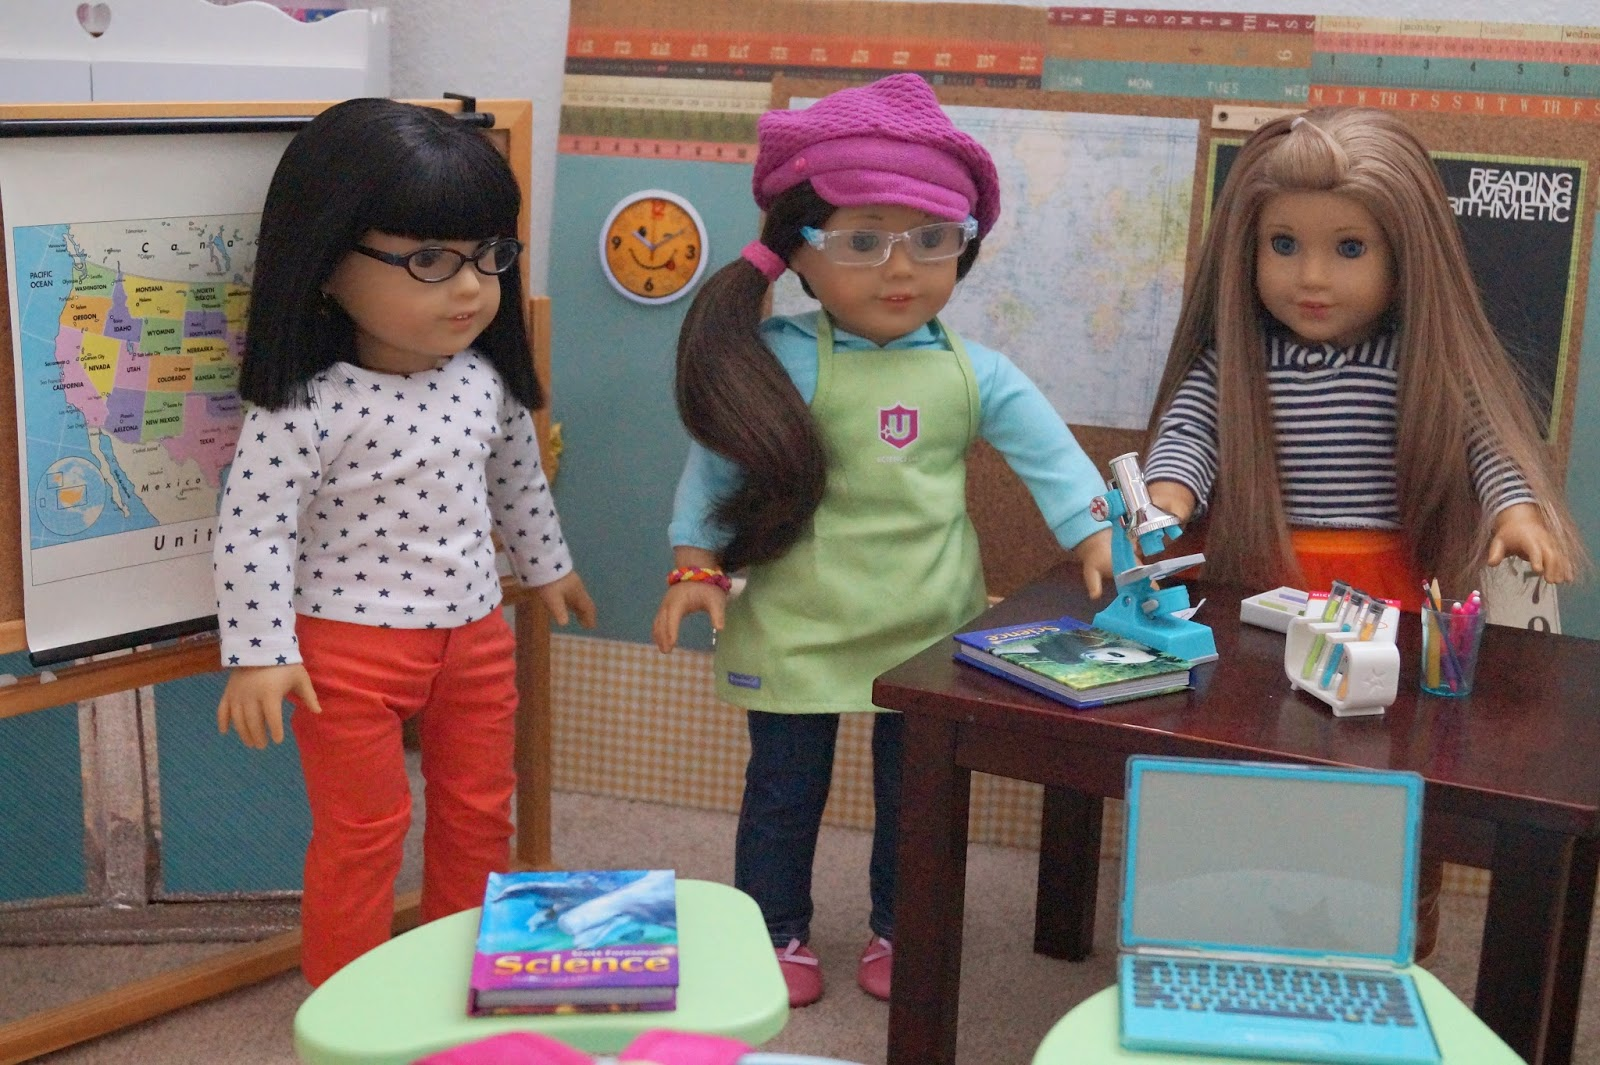 American Girl Doll Play School Days A Day In Science Class